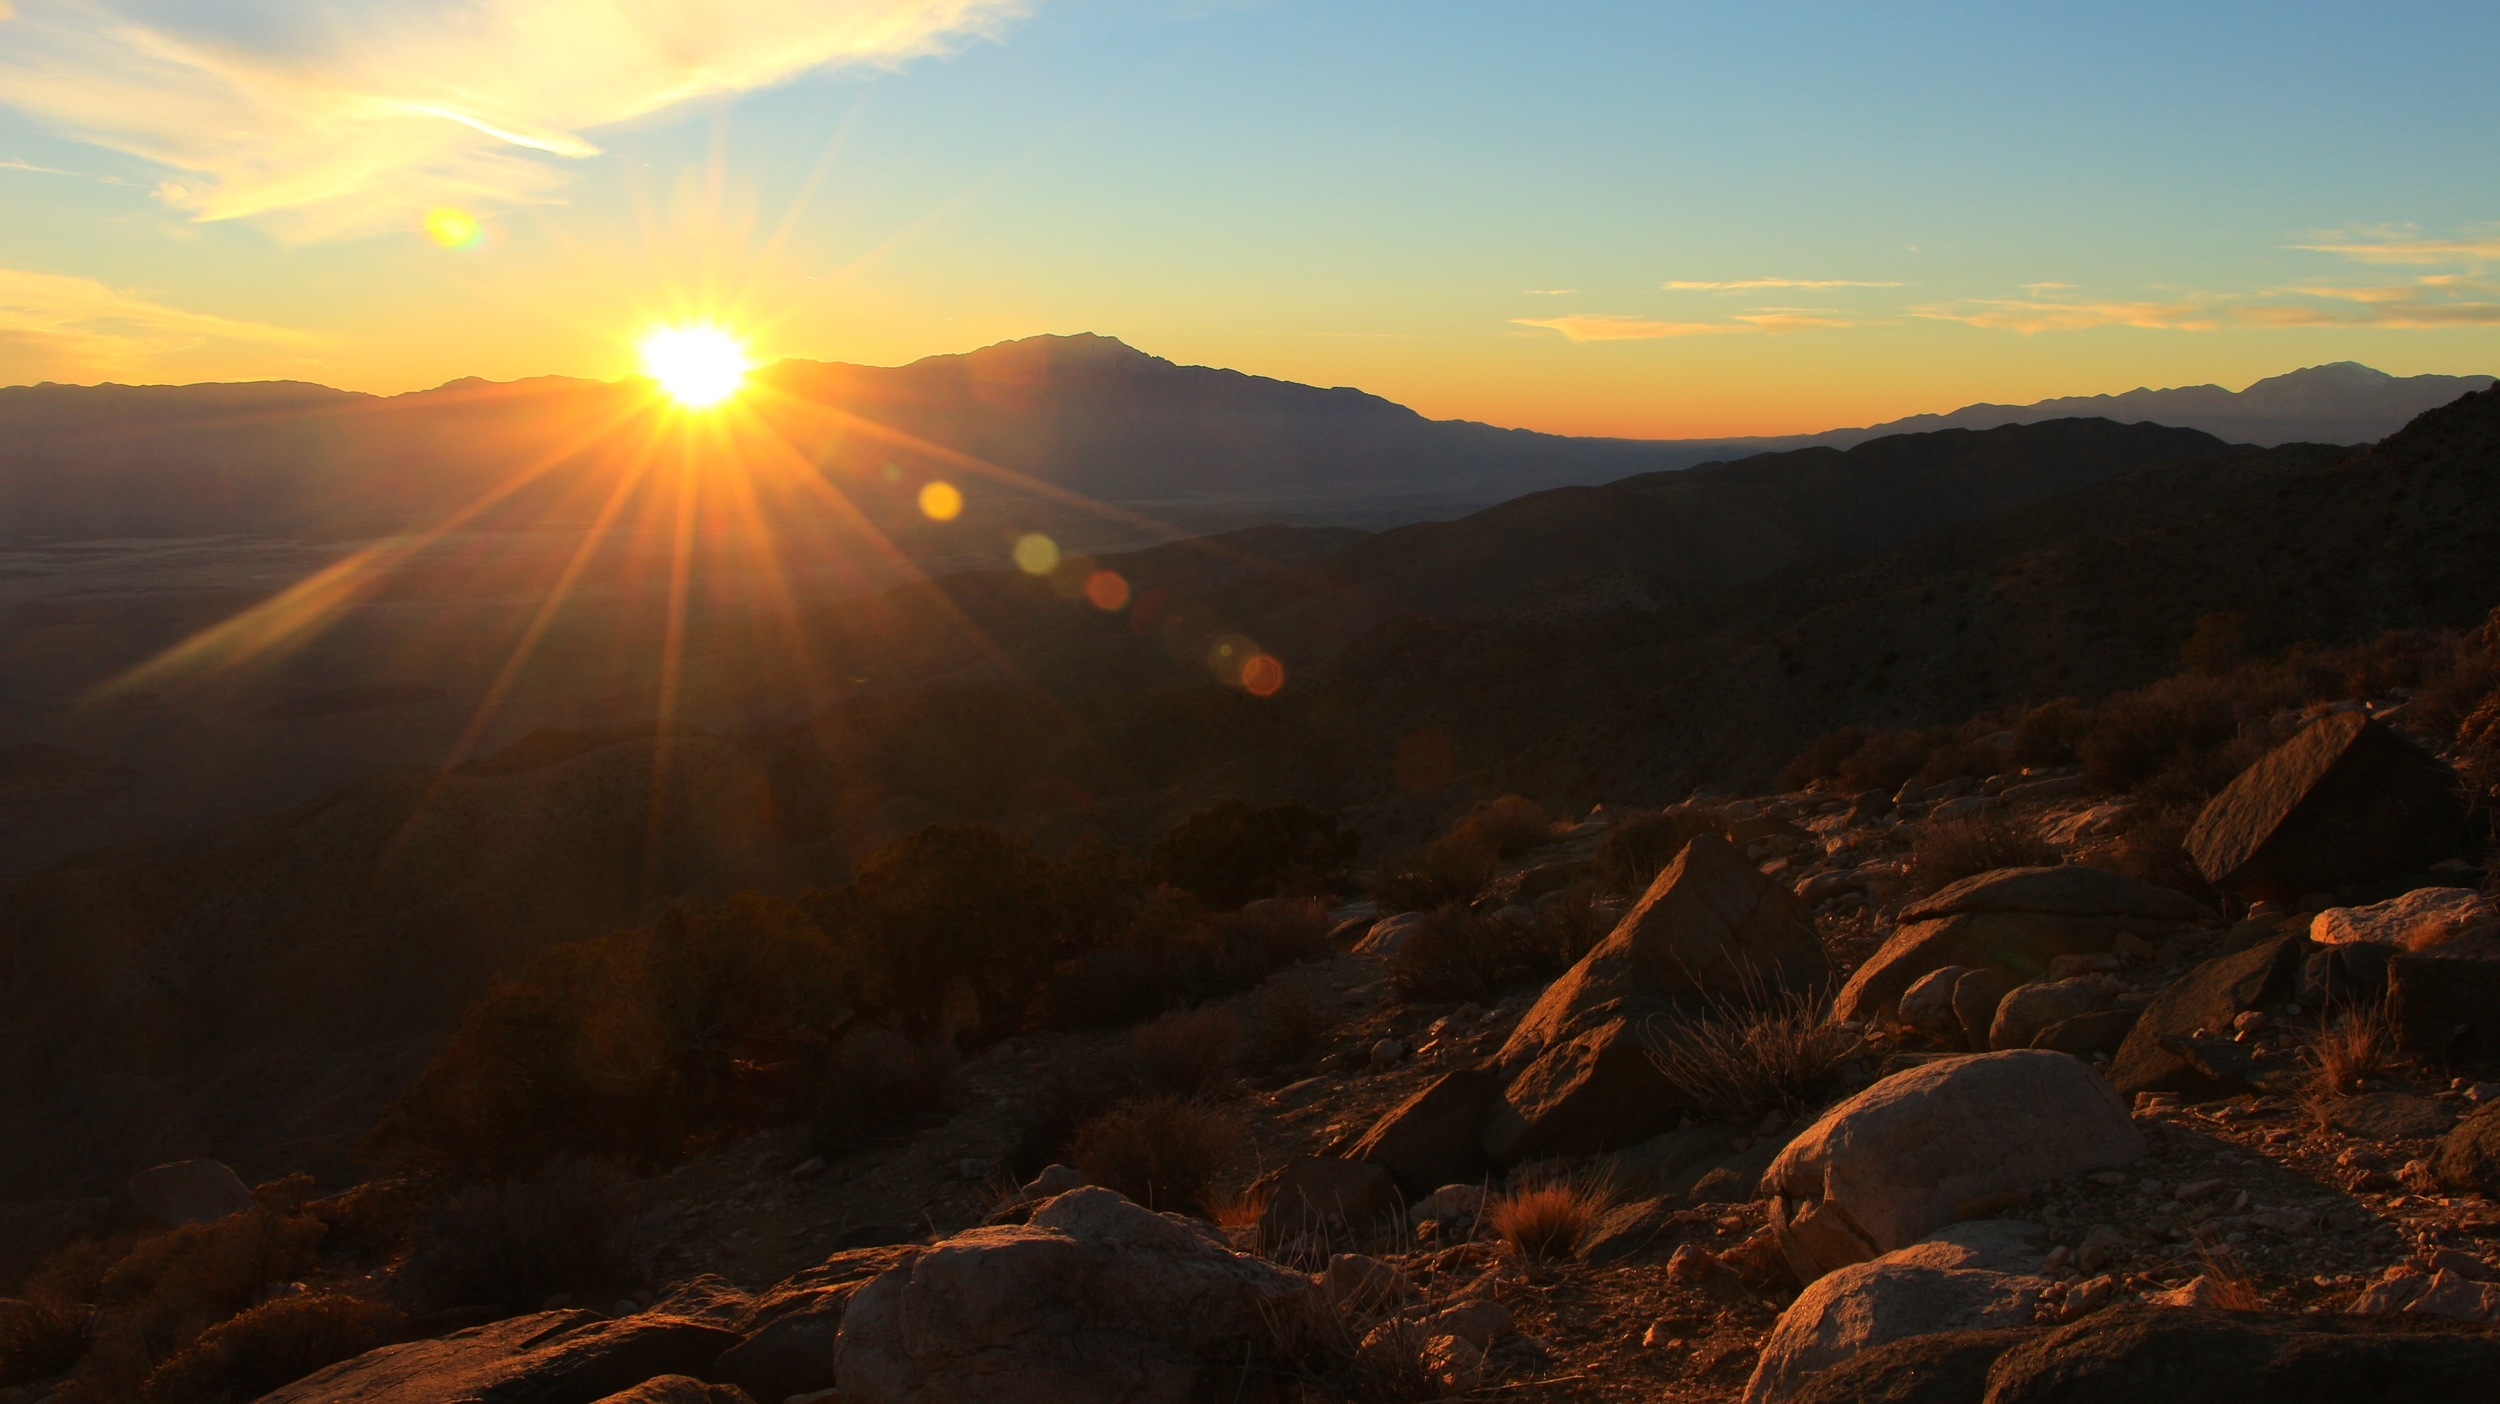 Sunset over the Indio Hills from Keys View, Joshua Tree National Park